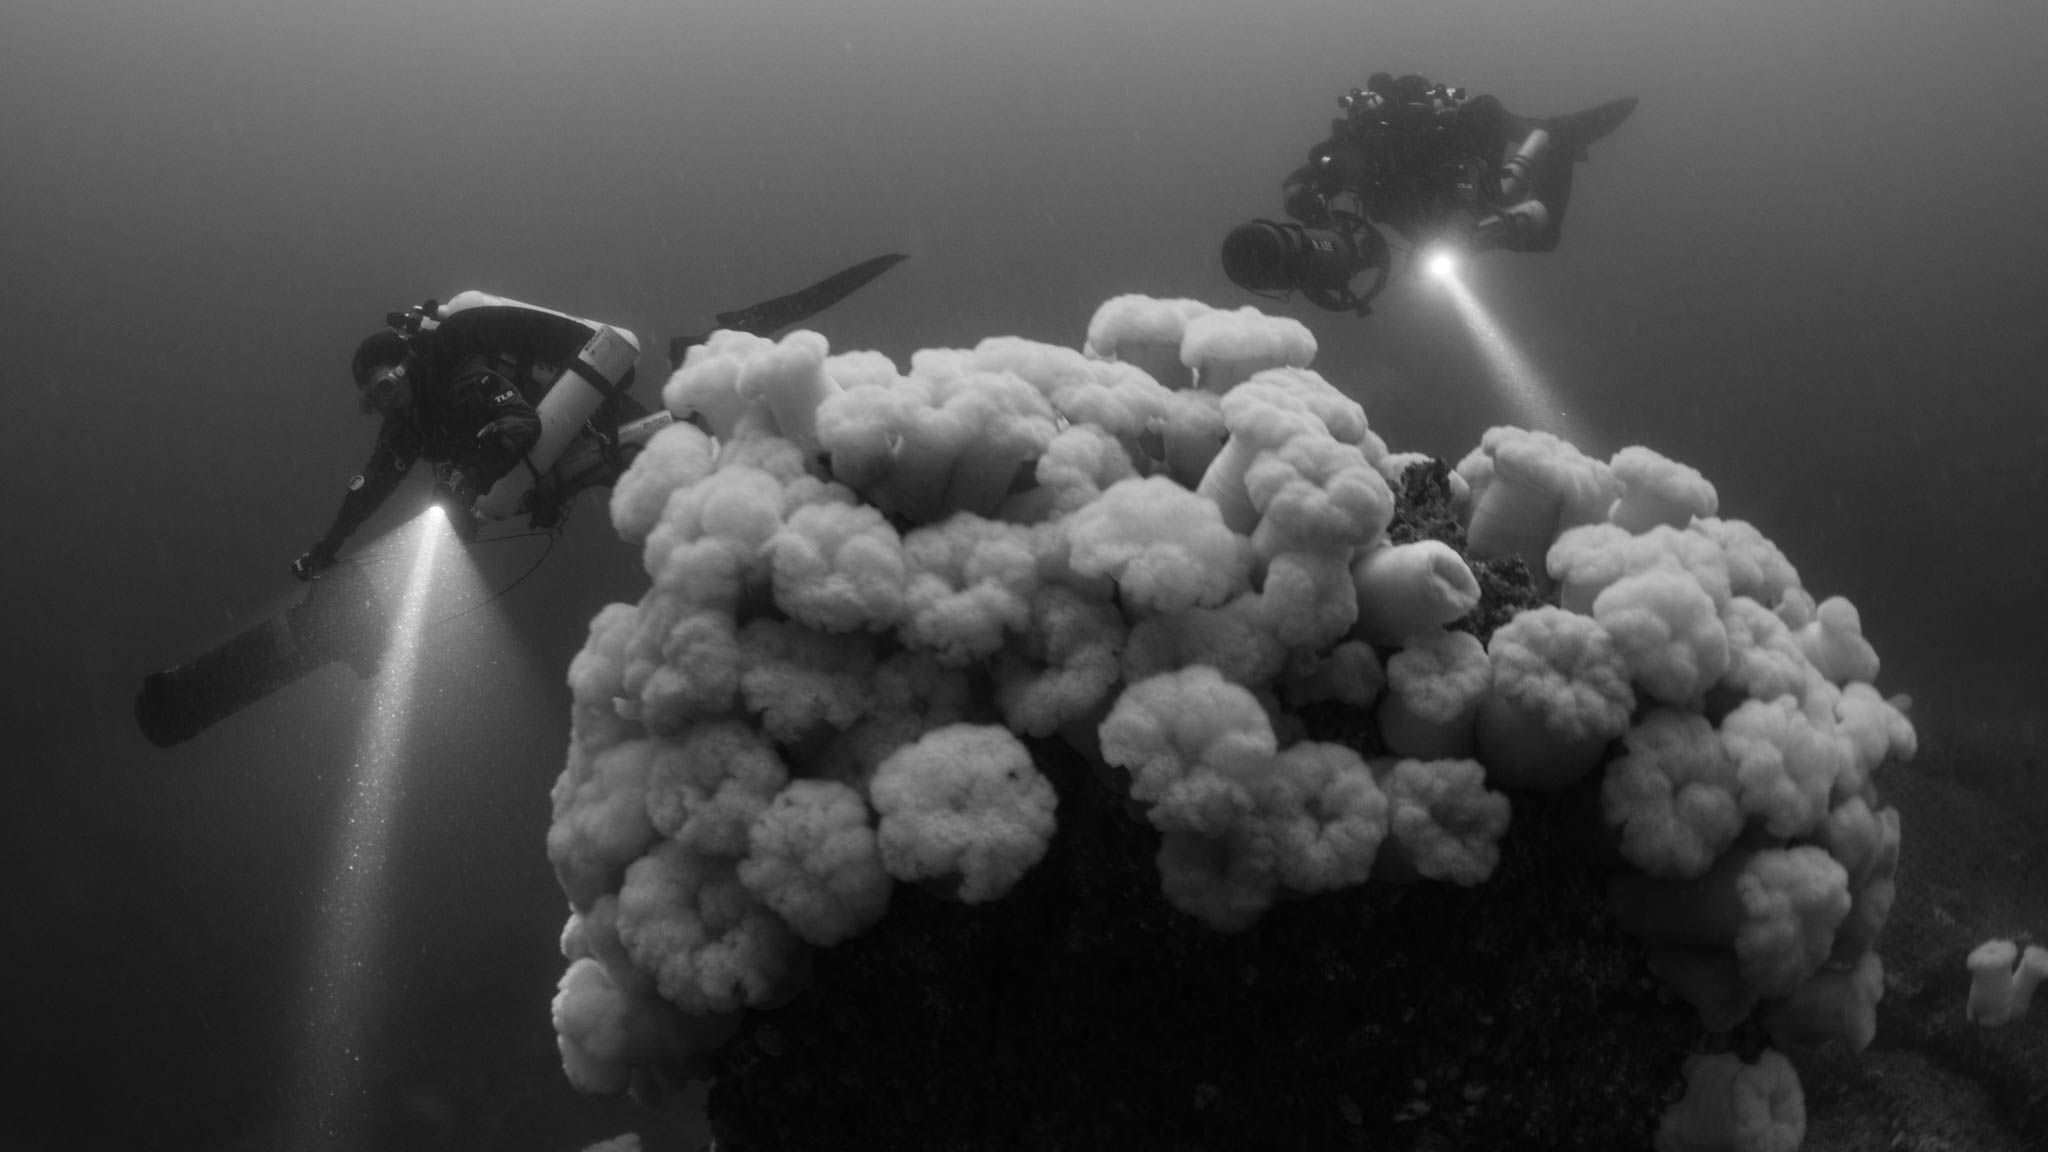 Divers and Metridiums